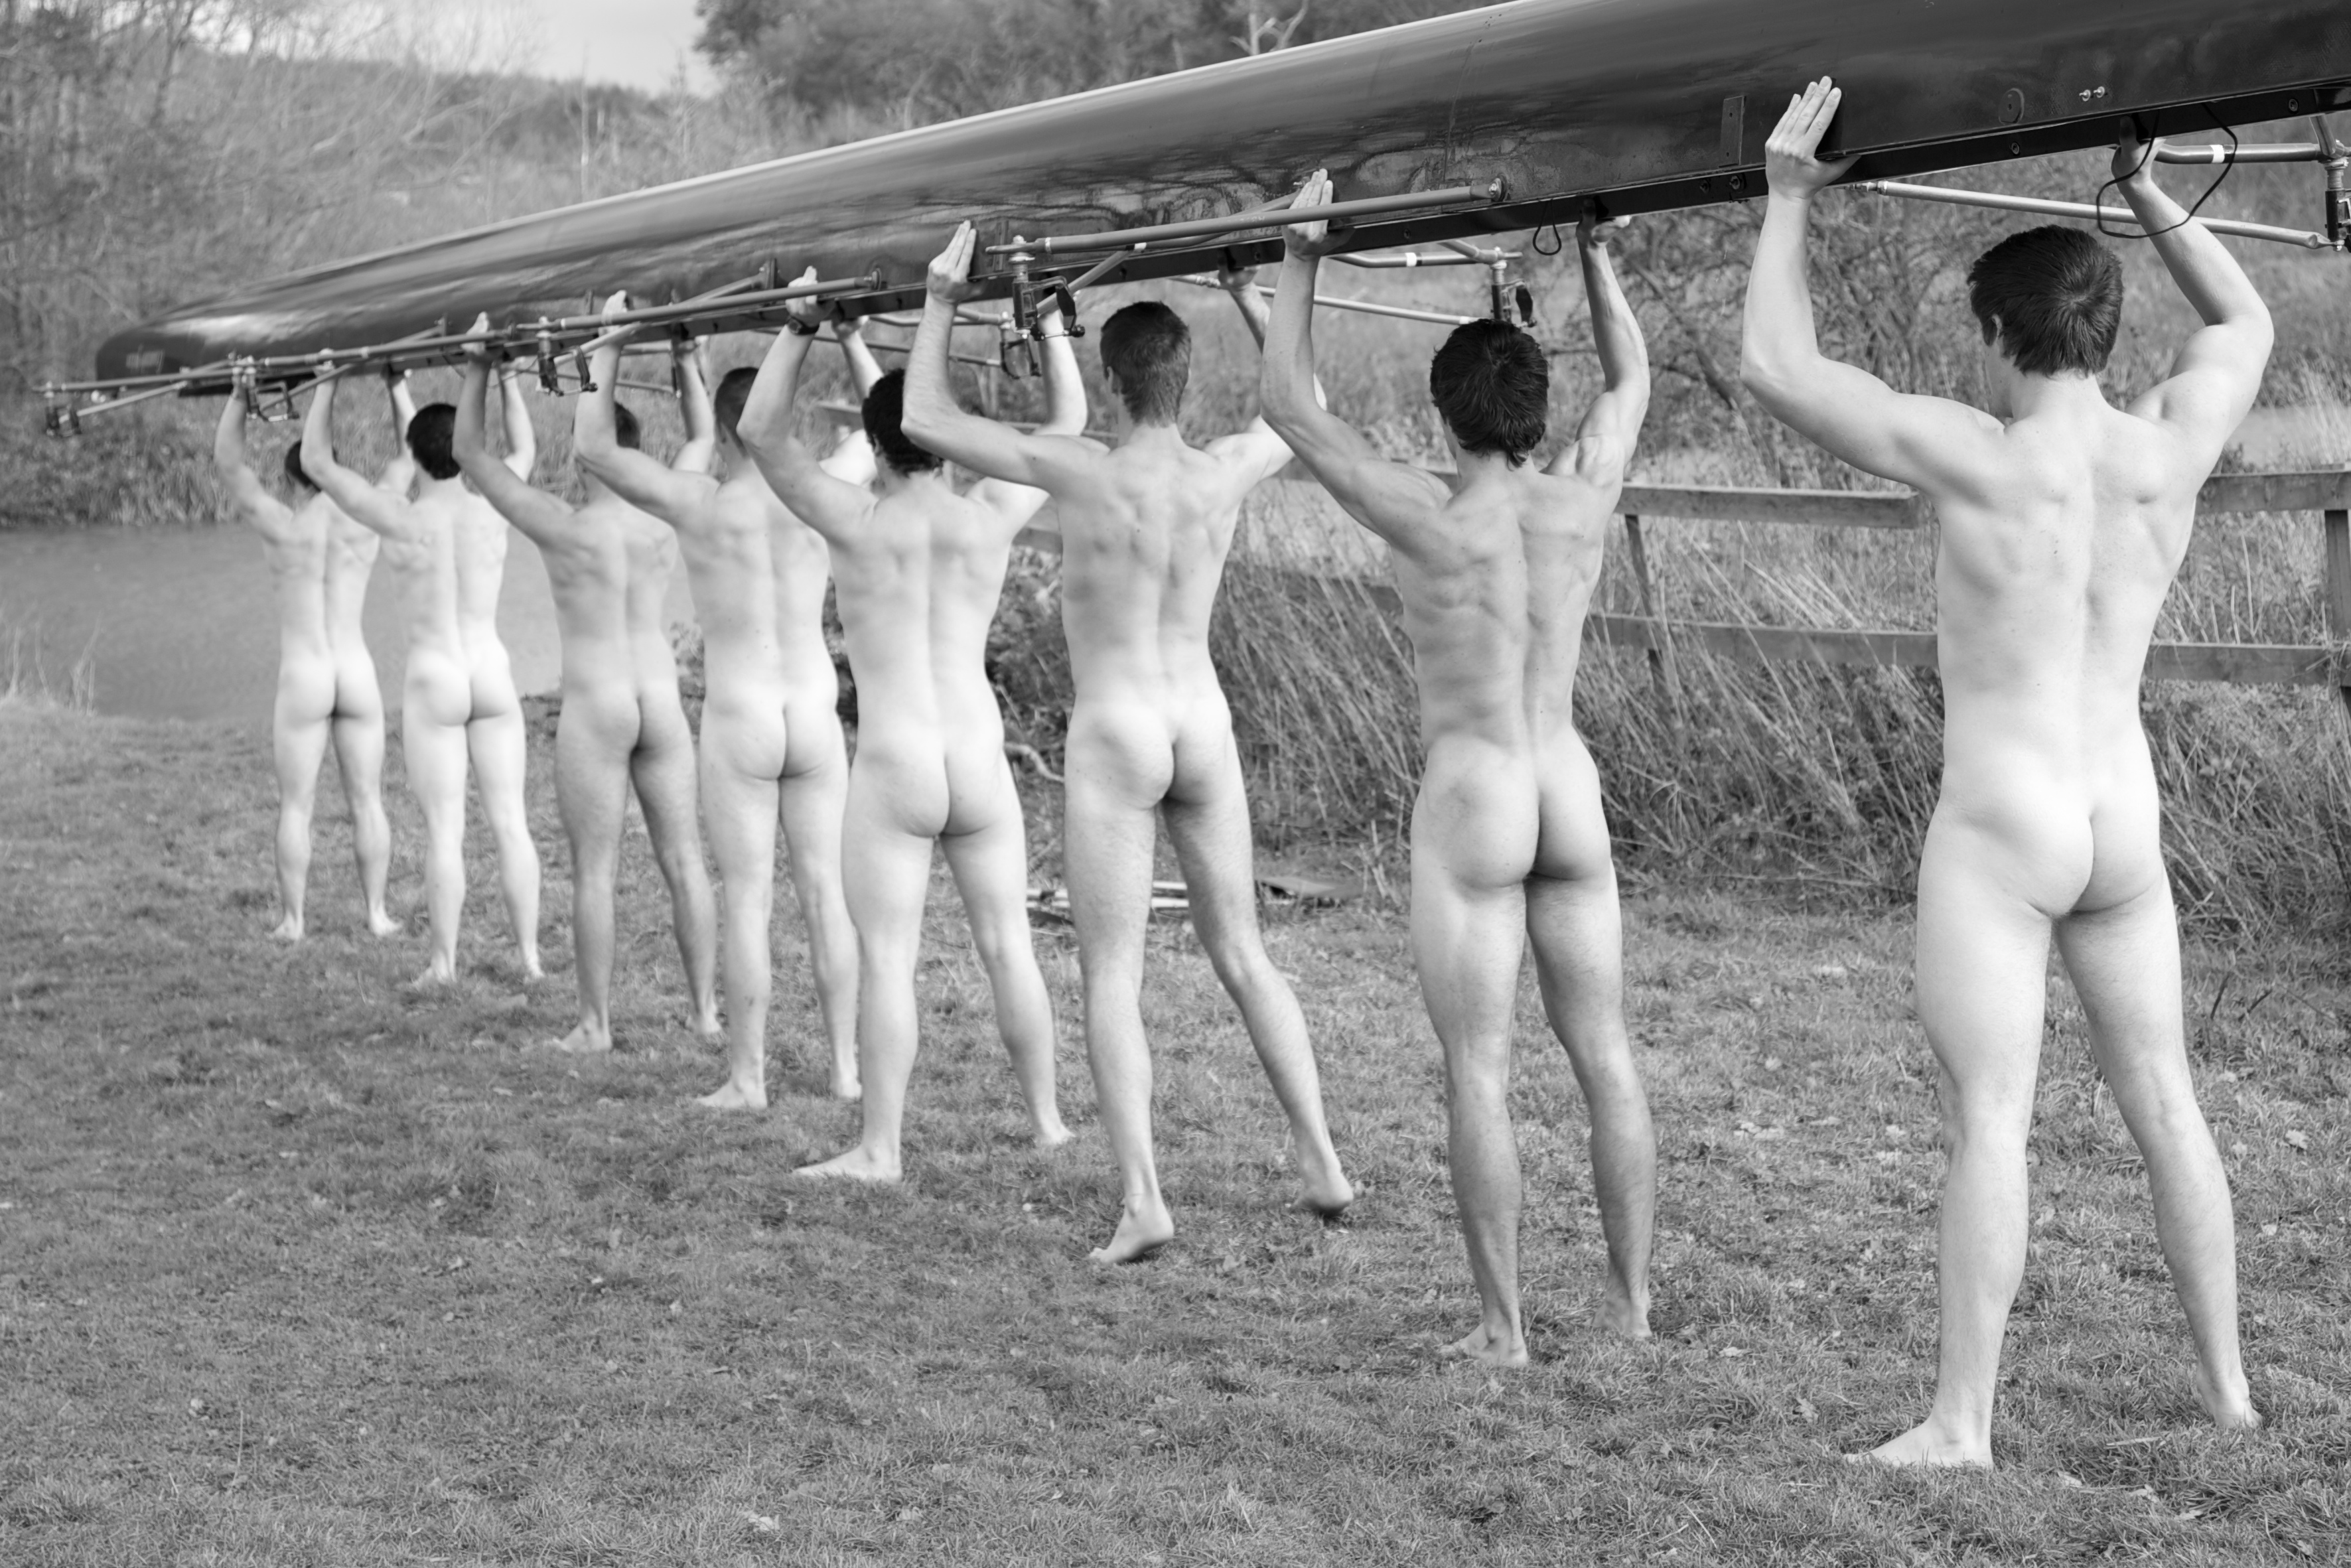 Warwick university men's rowing team strip naked in photo for charity calendar